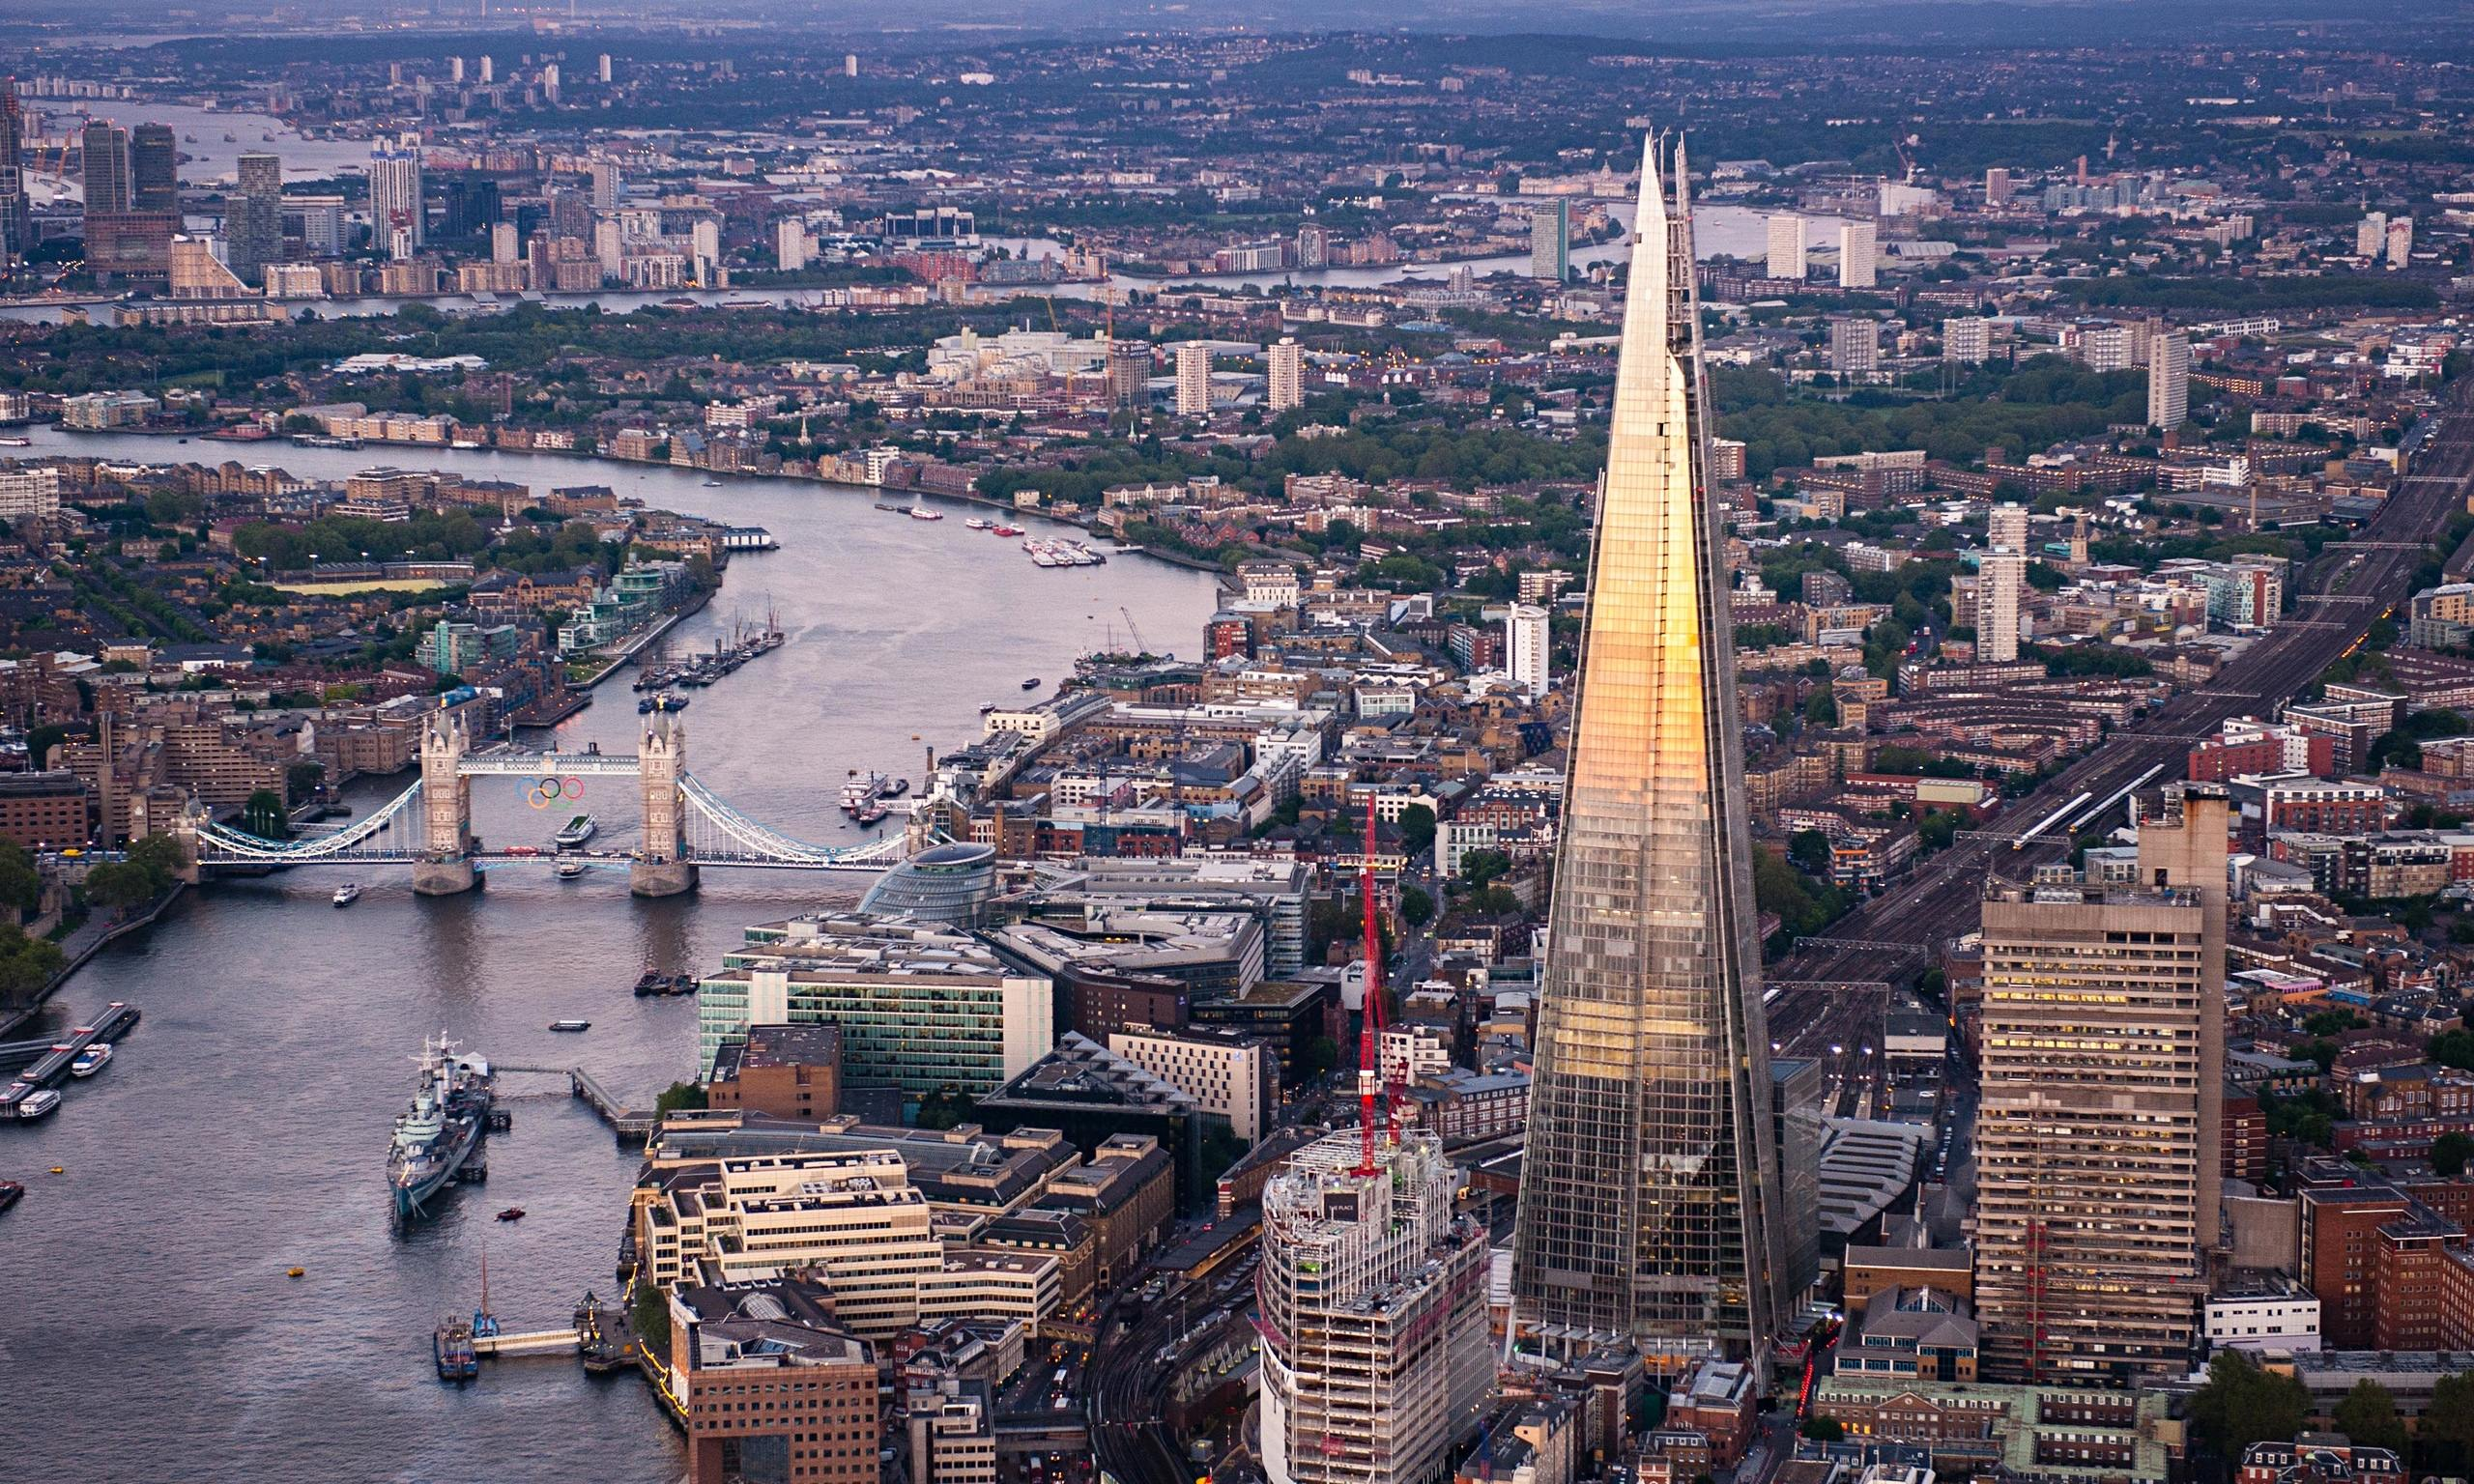 Aerial view of London and the Shard.